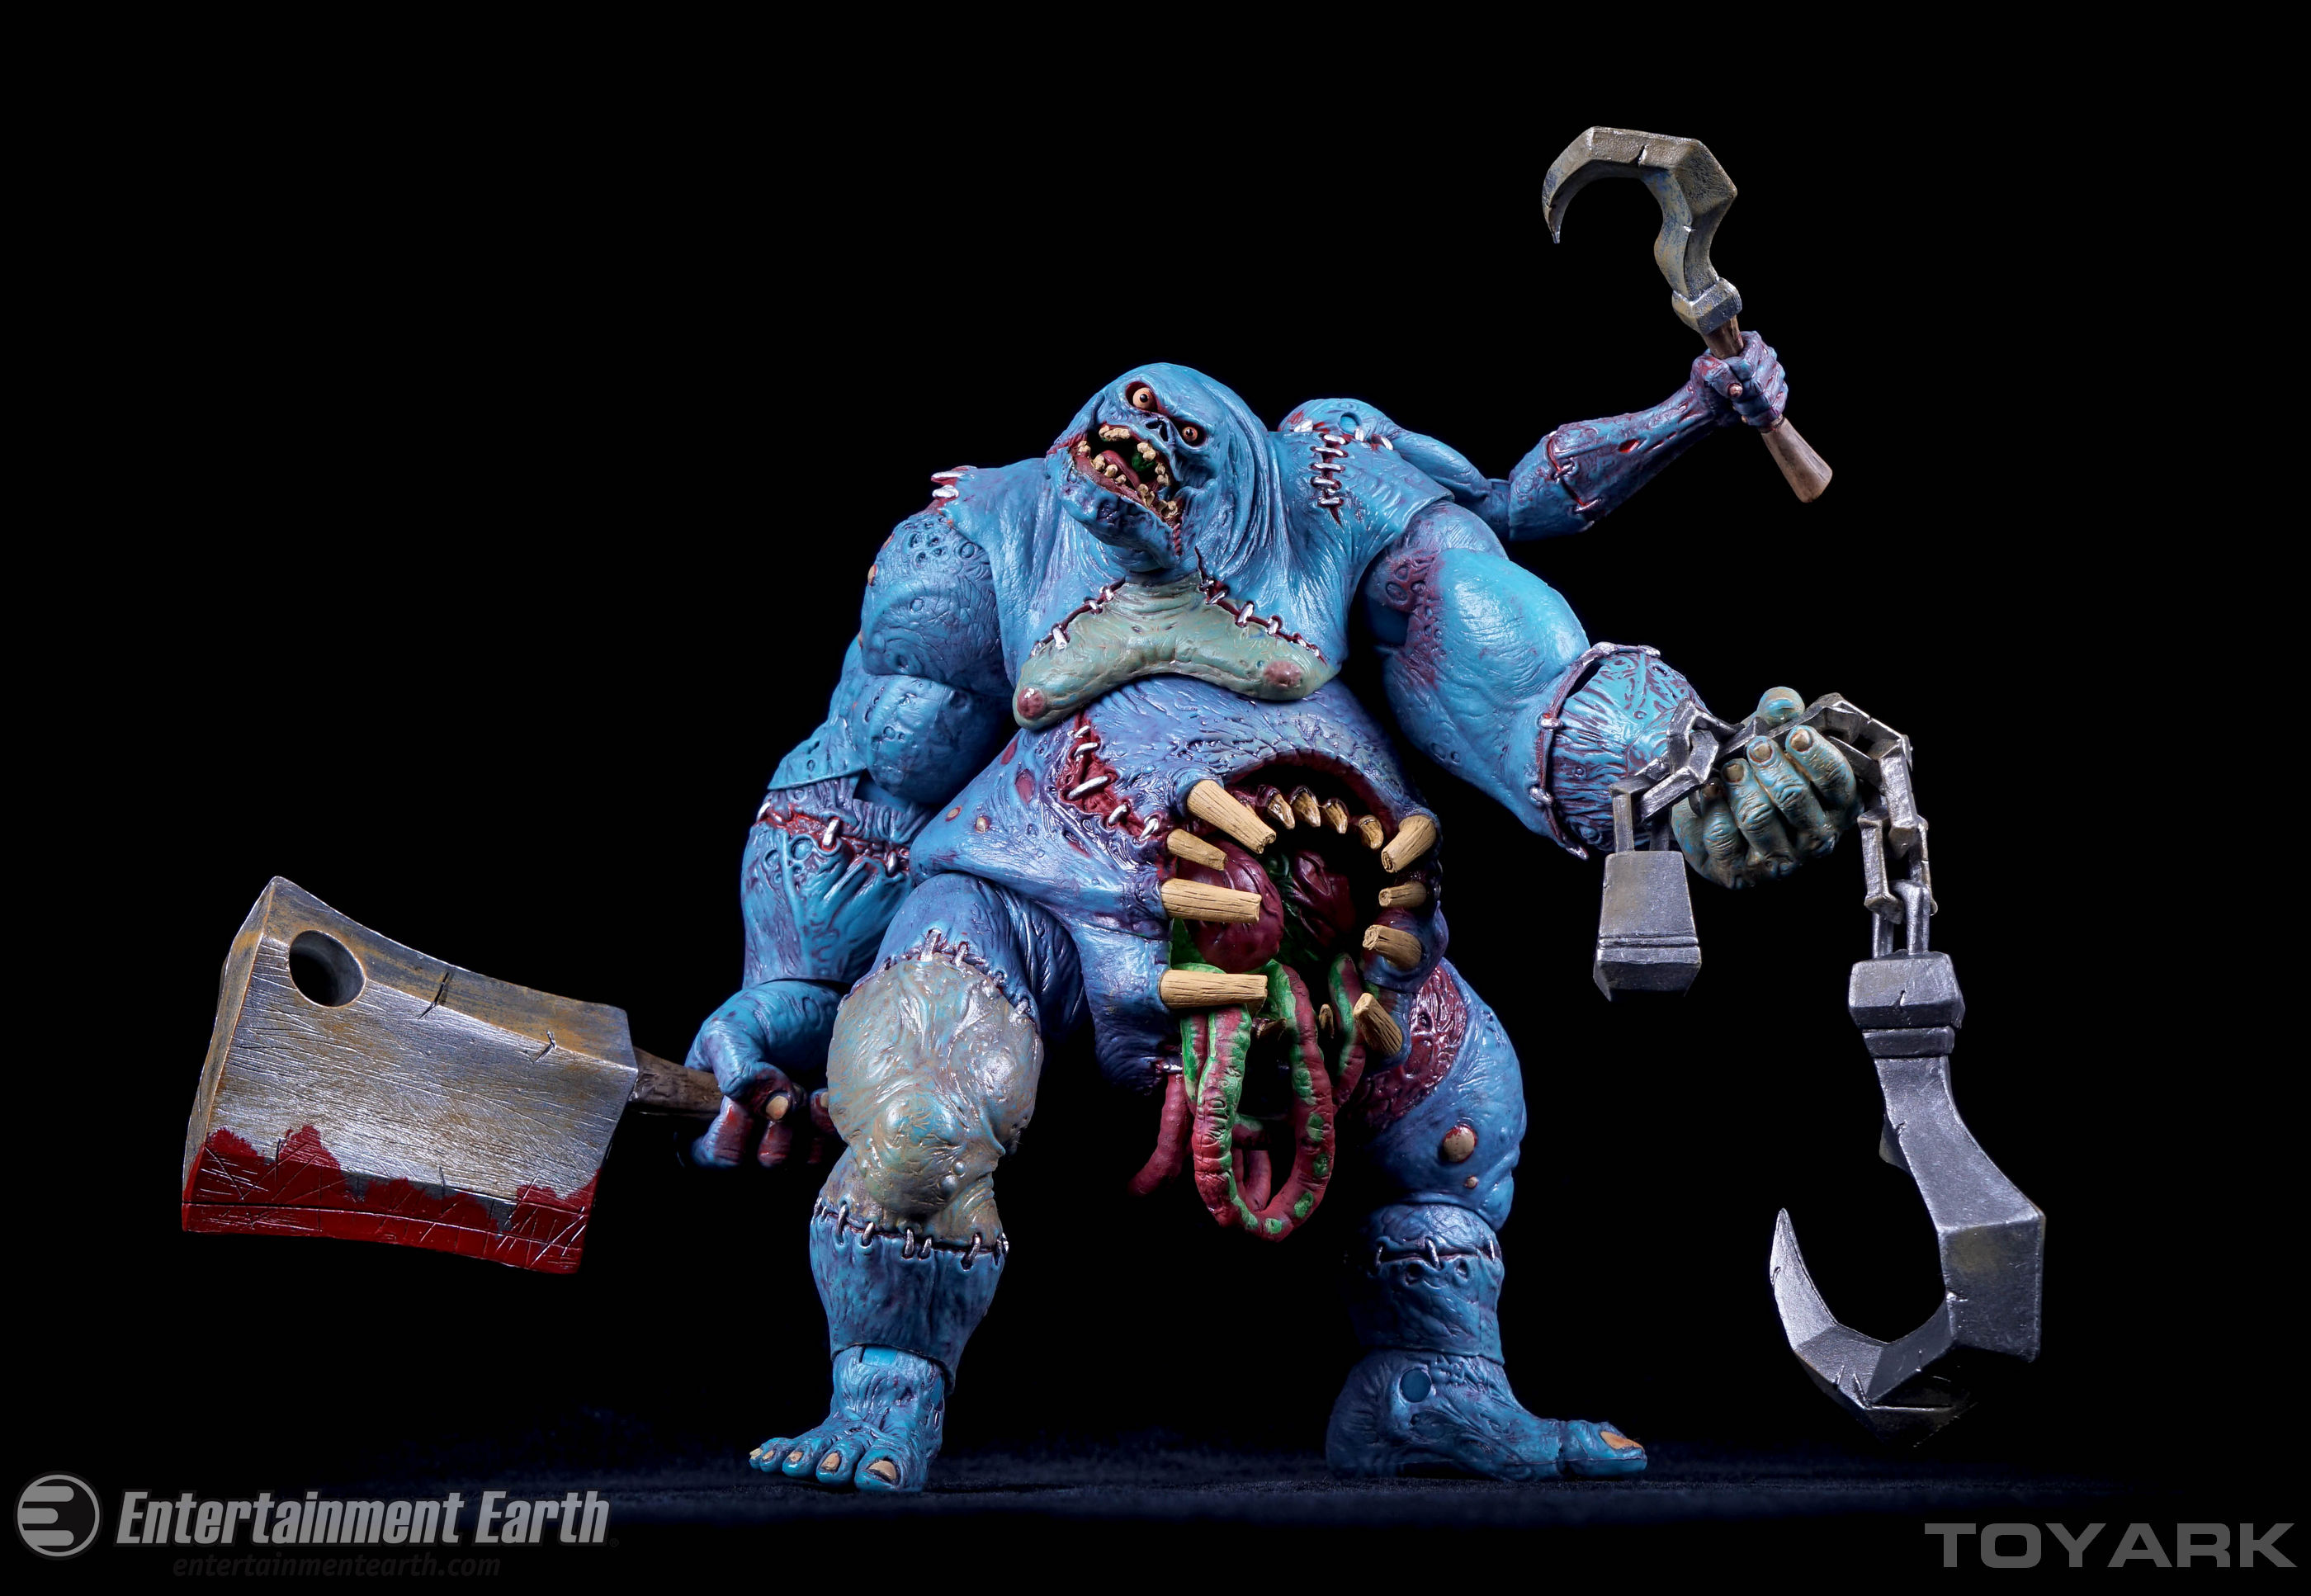 http://news.toyark.com/wp-content/uploads/sites/4/2016/01/NECA-HOTS-Stitches-035.jpg